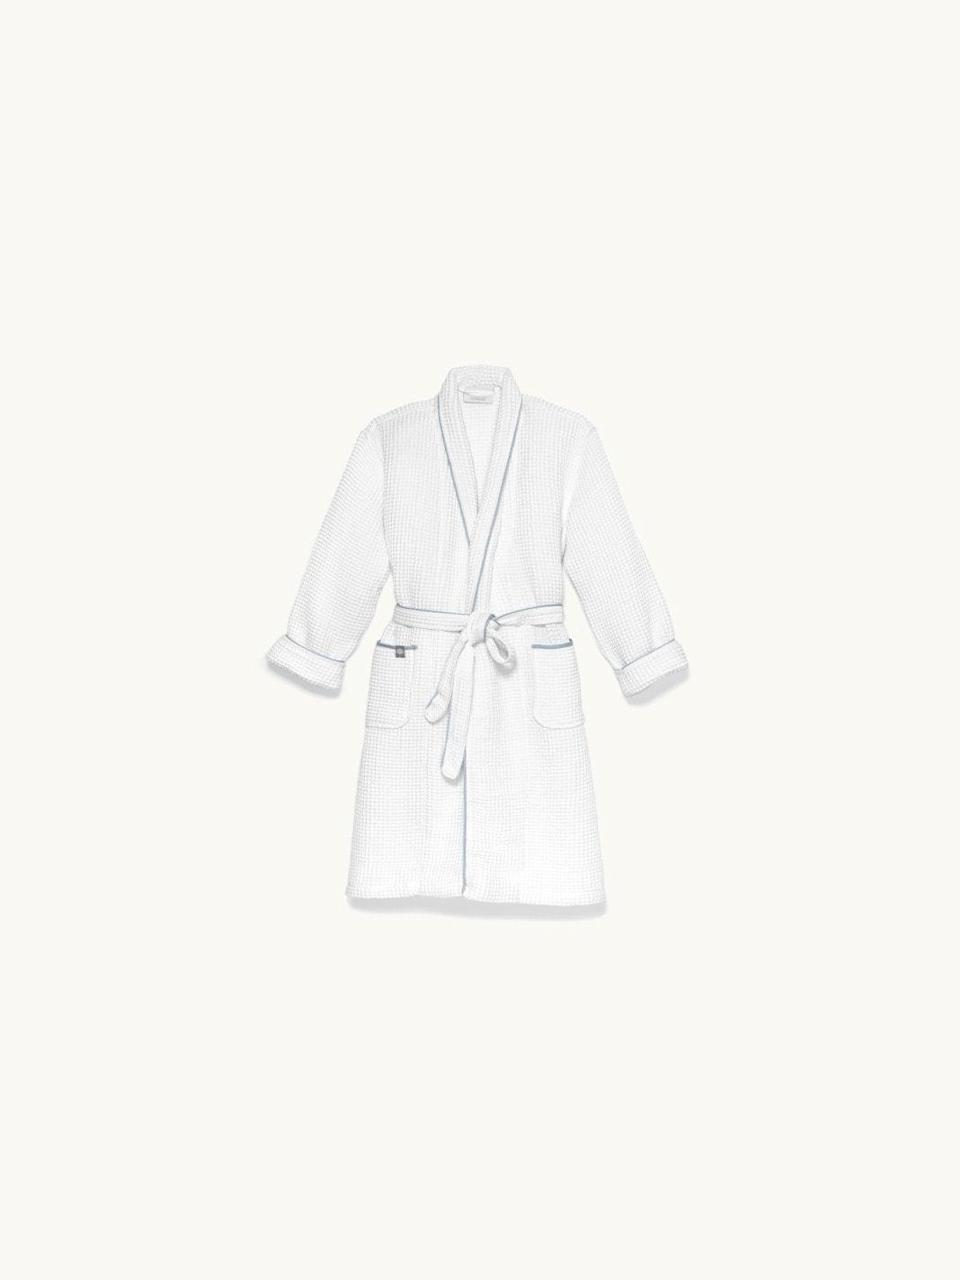 """<h3><h2>Boll & Branch Waffle Robe</h2></h3><br>Described as """"plush"""" and """"super-springy,"""" this waffle-weave robe is crafted from super absorbent materials that are perfect for swaddling any bod post-shower (or bubble bath).<br><br>One reviewer calls it, """"Superb in every way — yummy soft texture washes beautifully, sized properly. I'm lovin' it!""""<br><br><strong>Boll And Branch</strong> Waffle Robe, $, available at <a href=""""https://go.skimresources.com/?id=30283X879131&url=https%3A%2F%2Fwww.bollandbranch.com%2Fproducts%2Fwomens-waffle-robe"""" rel=""""nofollow noopener"""" target=""""_blank"""" data-ylk=""""slk:Boll And Branch"""" class=""""link rapid-noclick-resp"""">Boll And Branch</a>"""